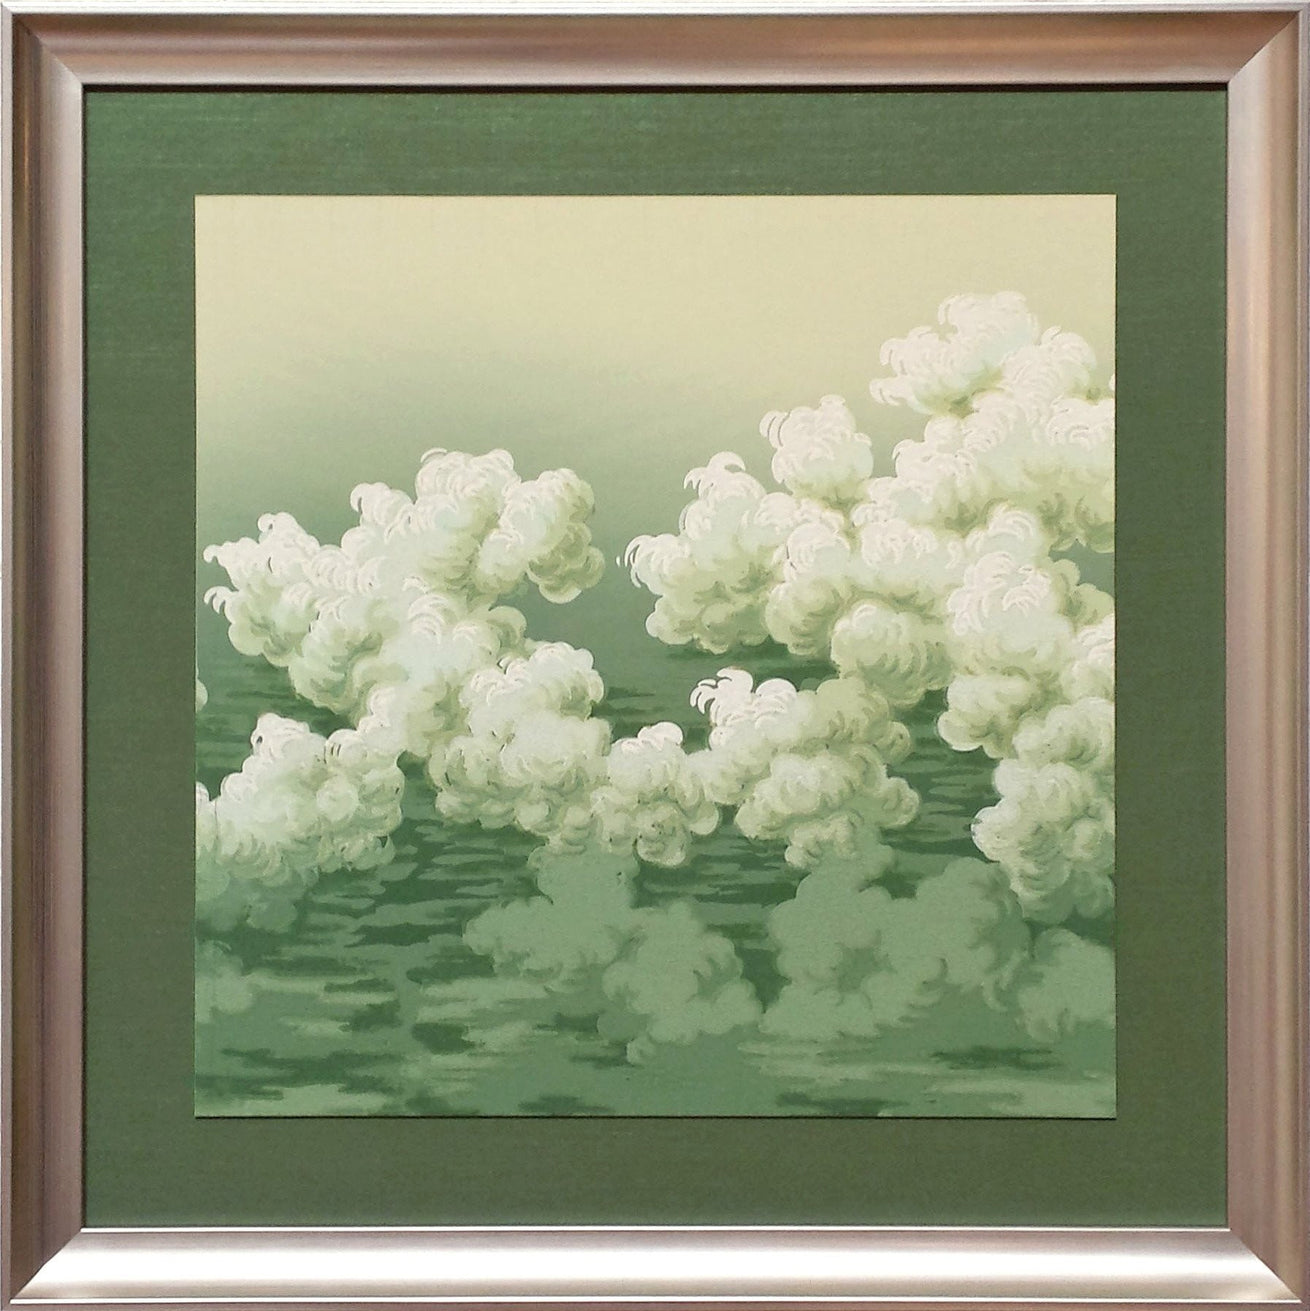 Blended Green Cloud Frieze - Framed Antique Wallpaper Art